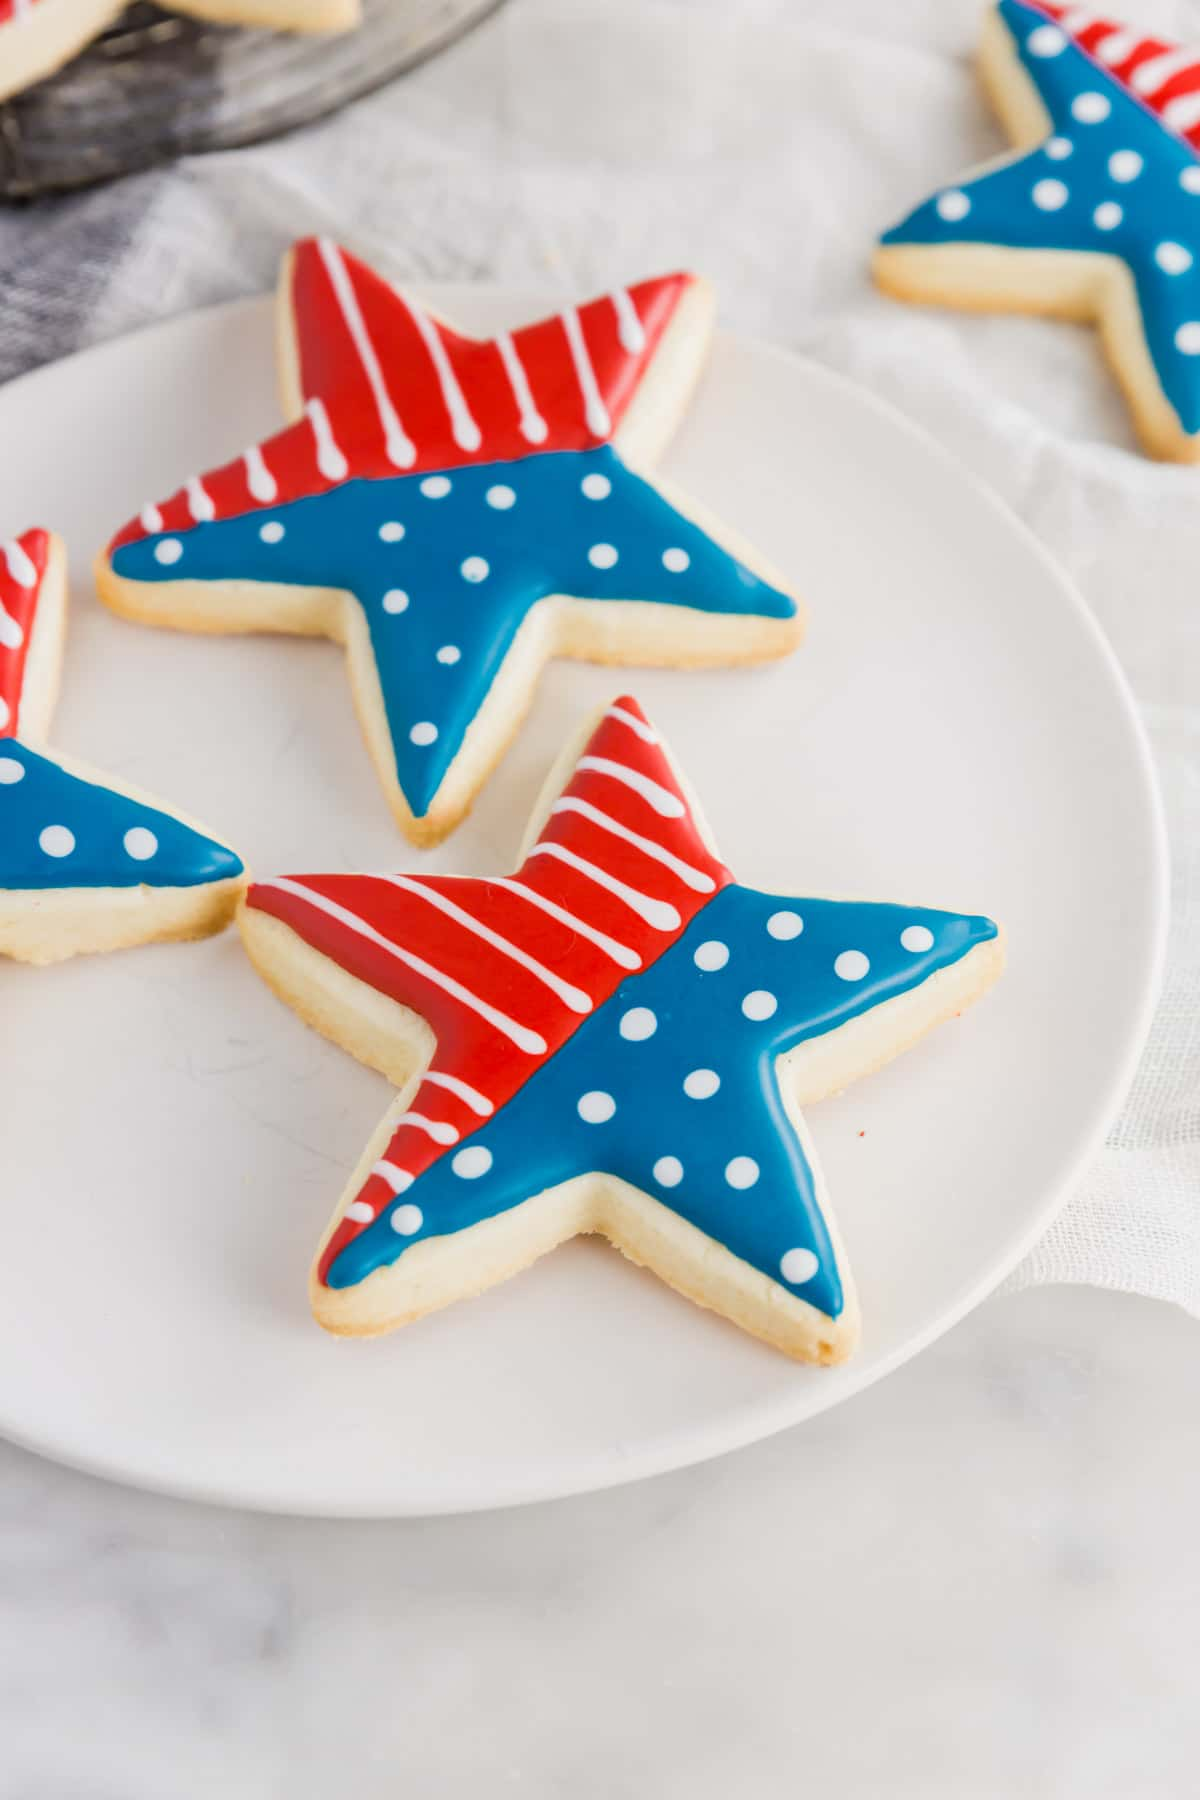 An aerial photo of a white plate with star shaped sugar cookies with a flag design on them.